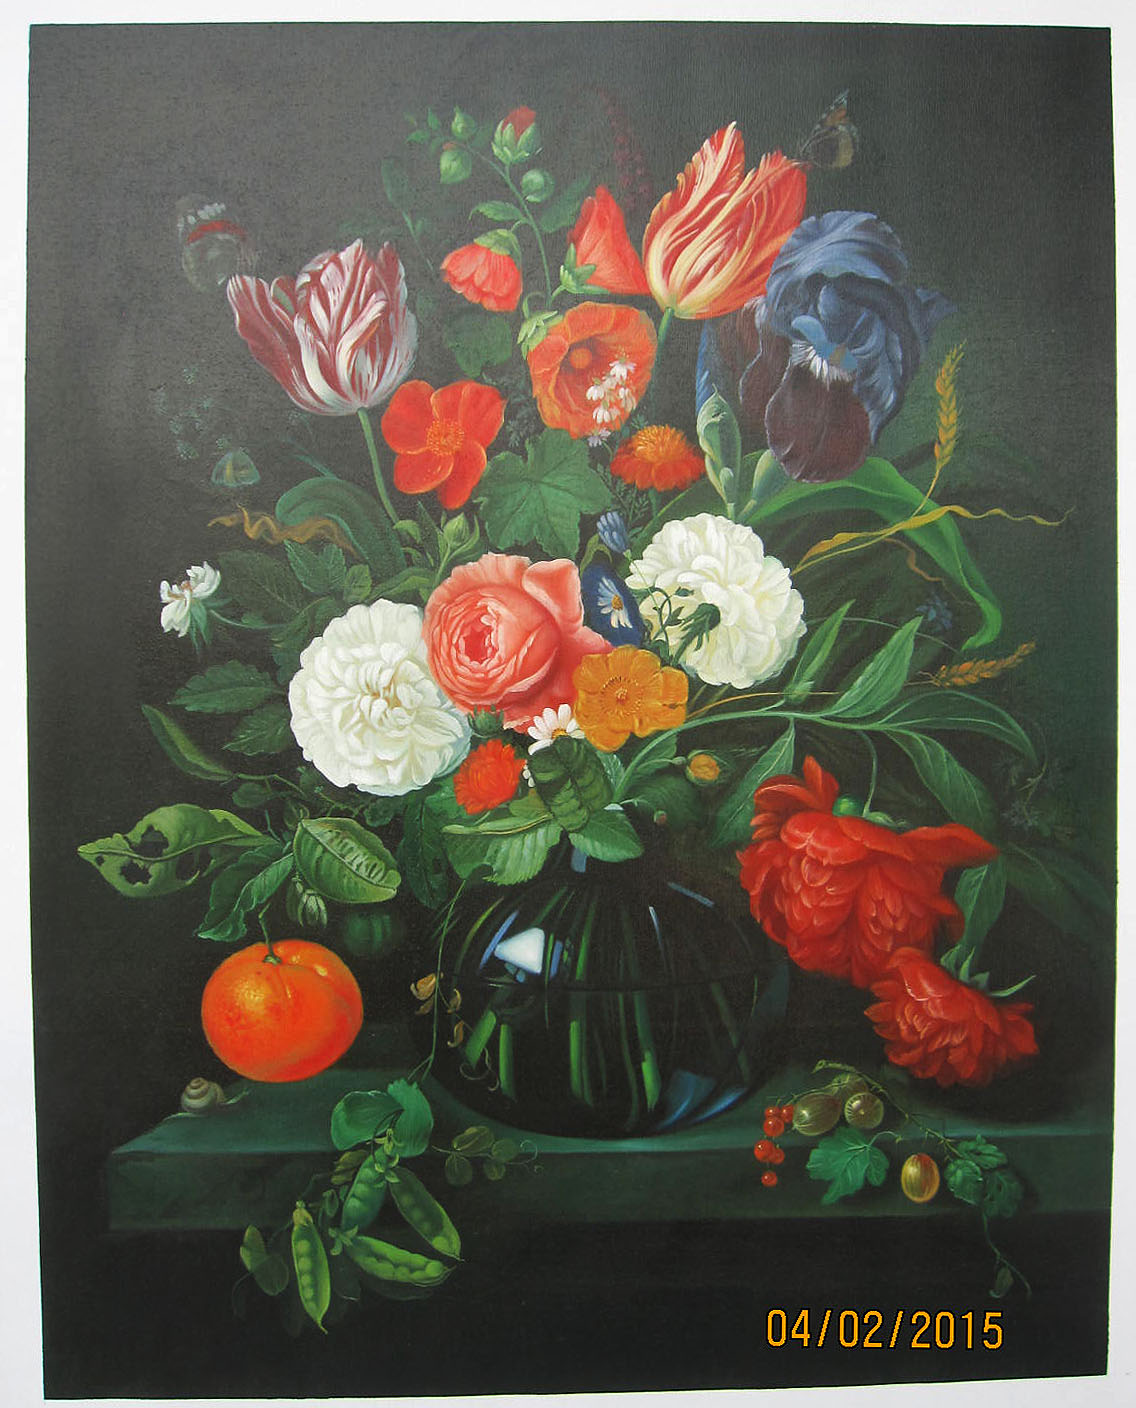 Vase with Tulips - <a href='https://www.reproduction-gallery.com/artist/abraham-mignon/?page=1&perpage=30'>More Detail</a>